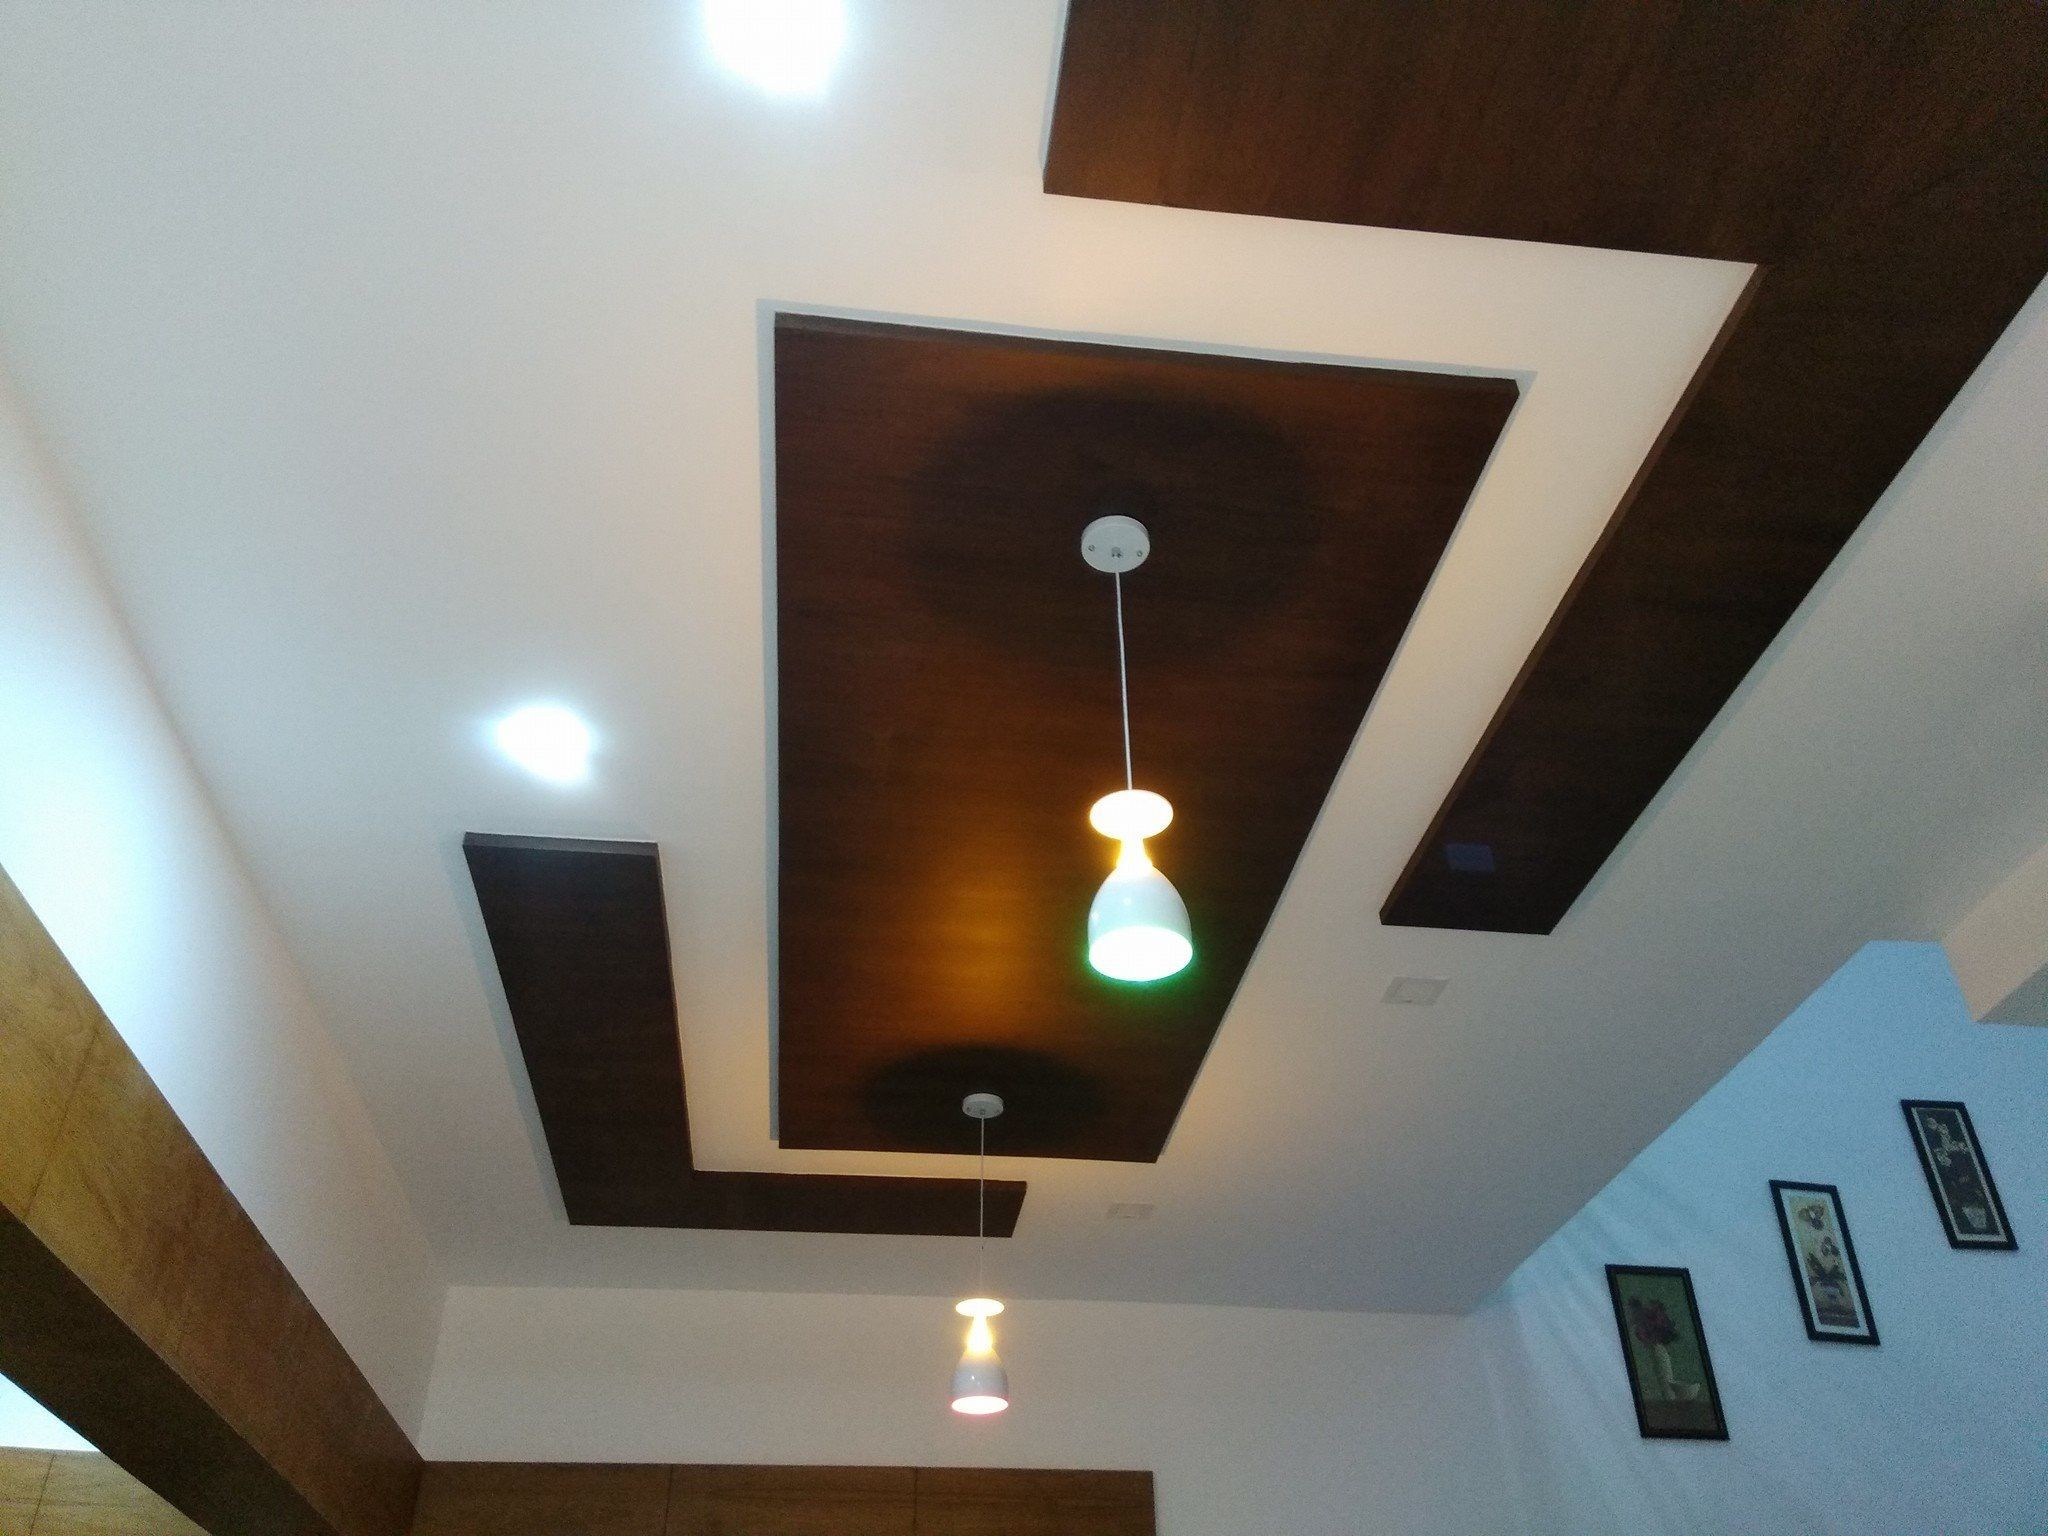 5 incredible cool tips false ceiling hall modern false ceiling hall rh pinterest com fall ceiling images hall fall ceiling hall ki design